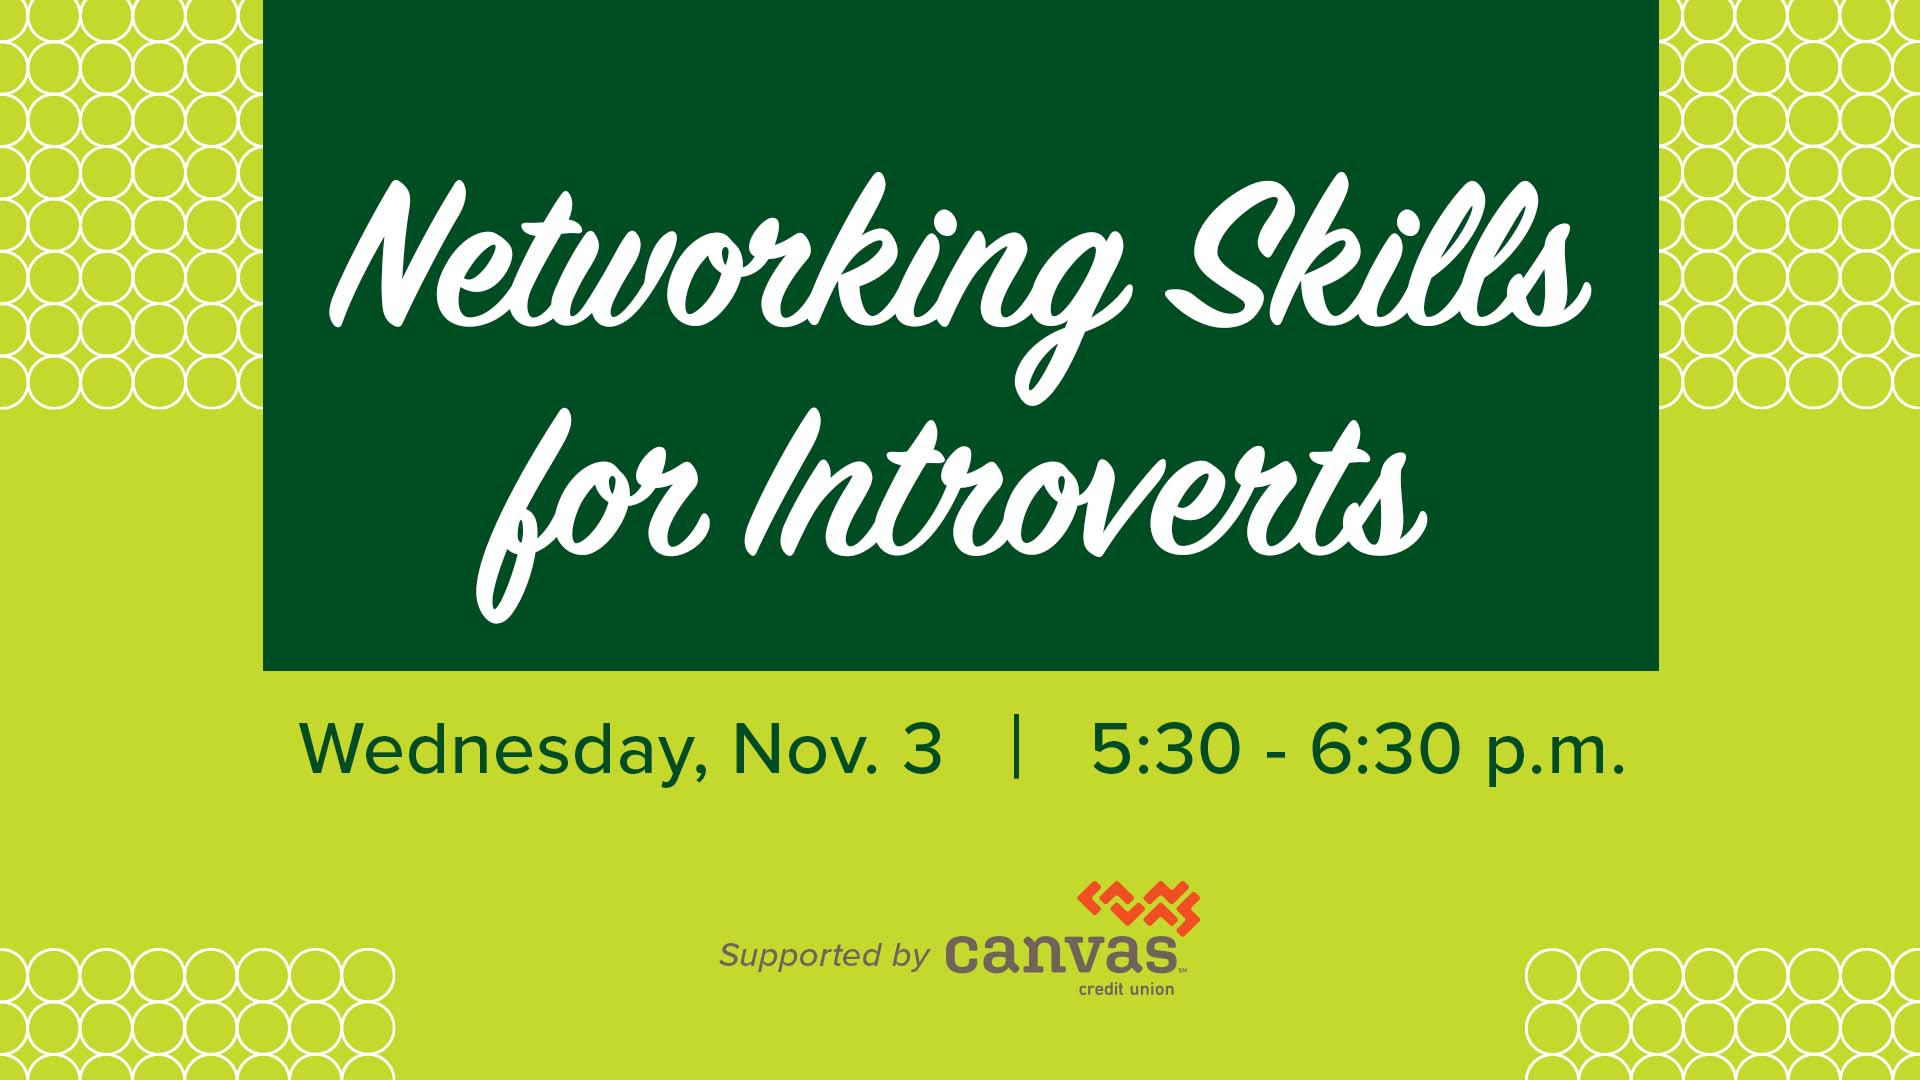 Image for Networking Skills for Introverts webinar